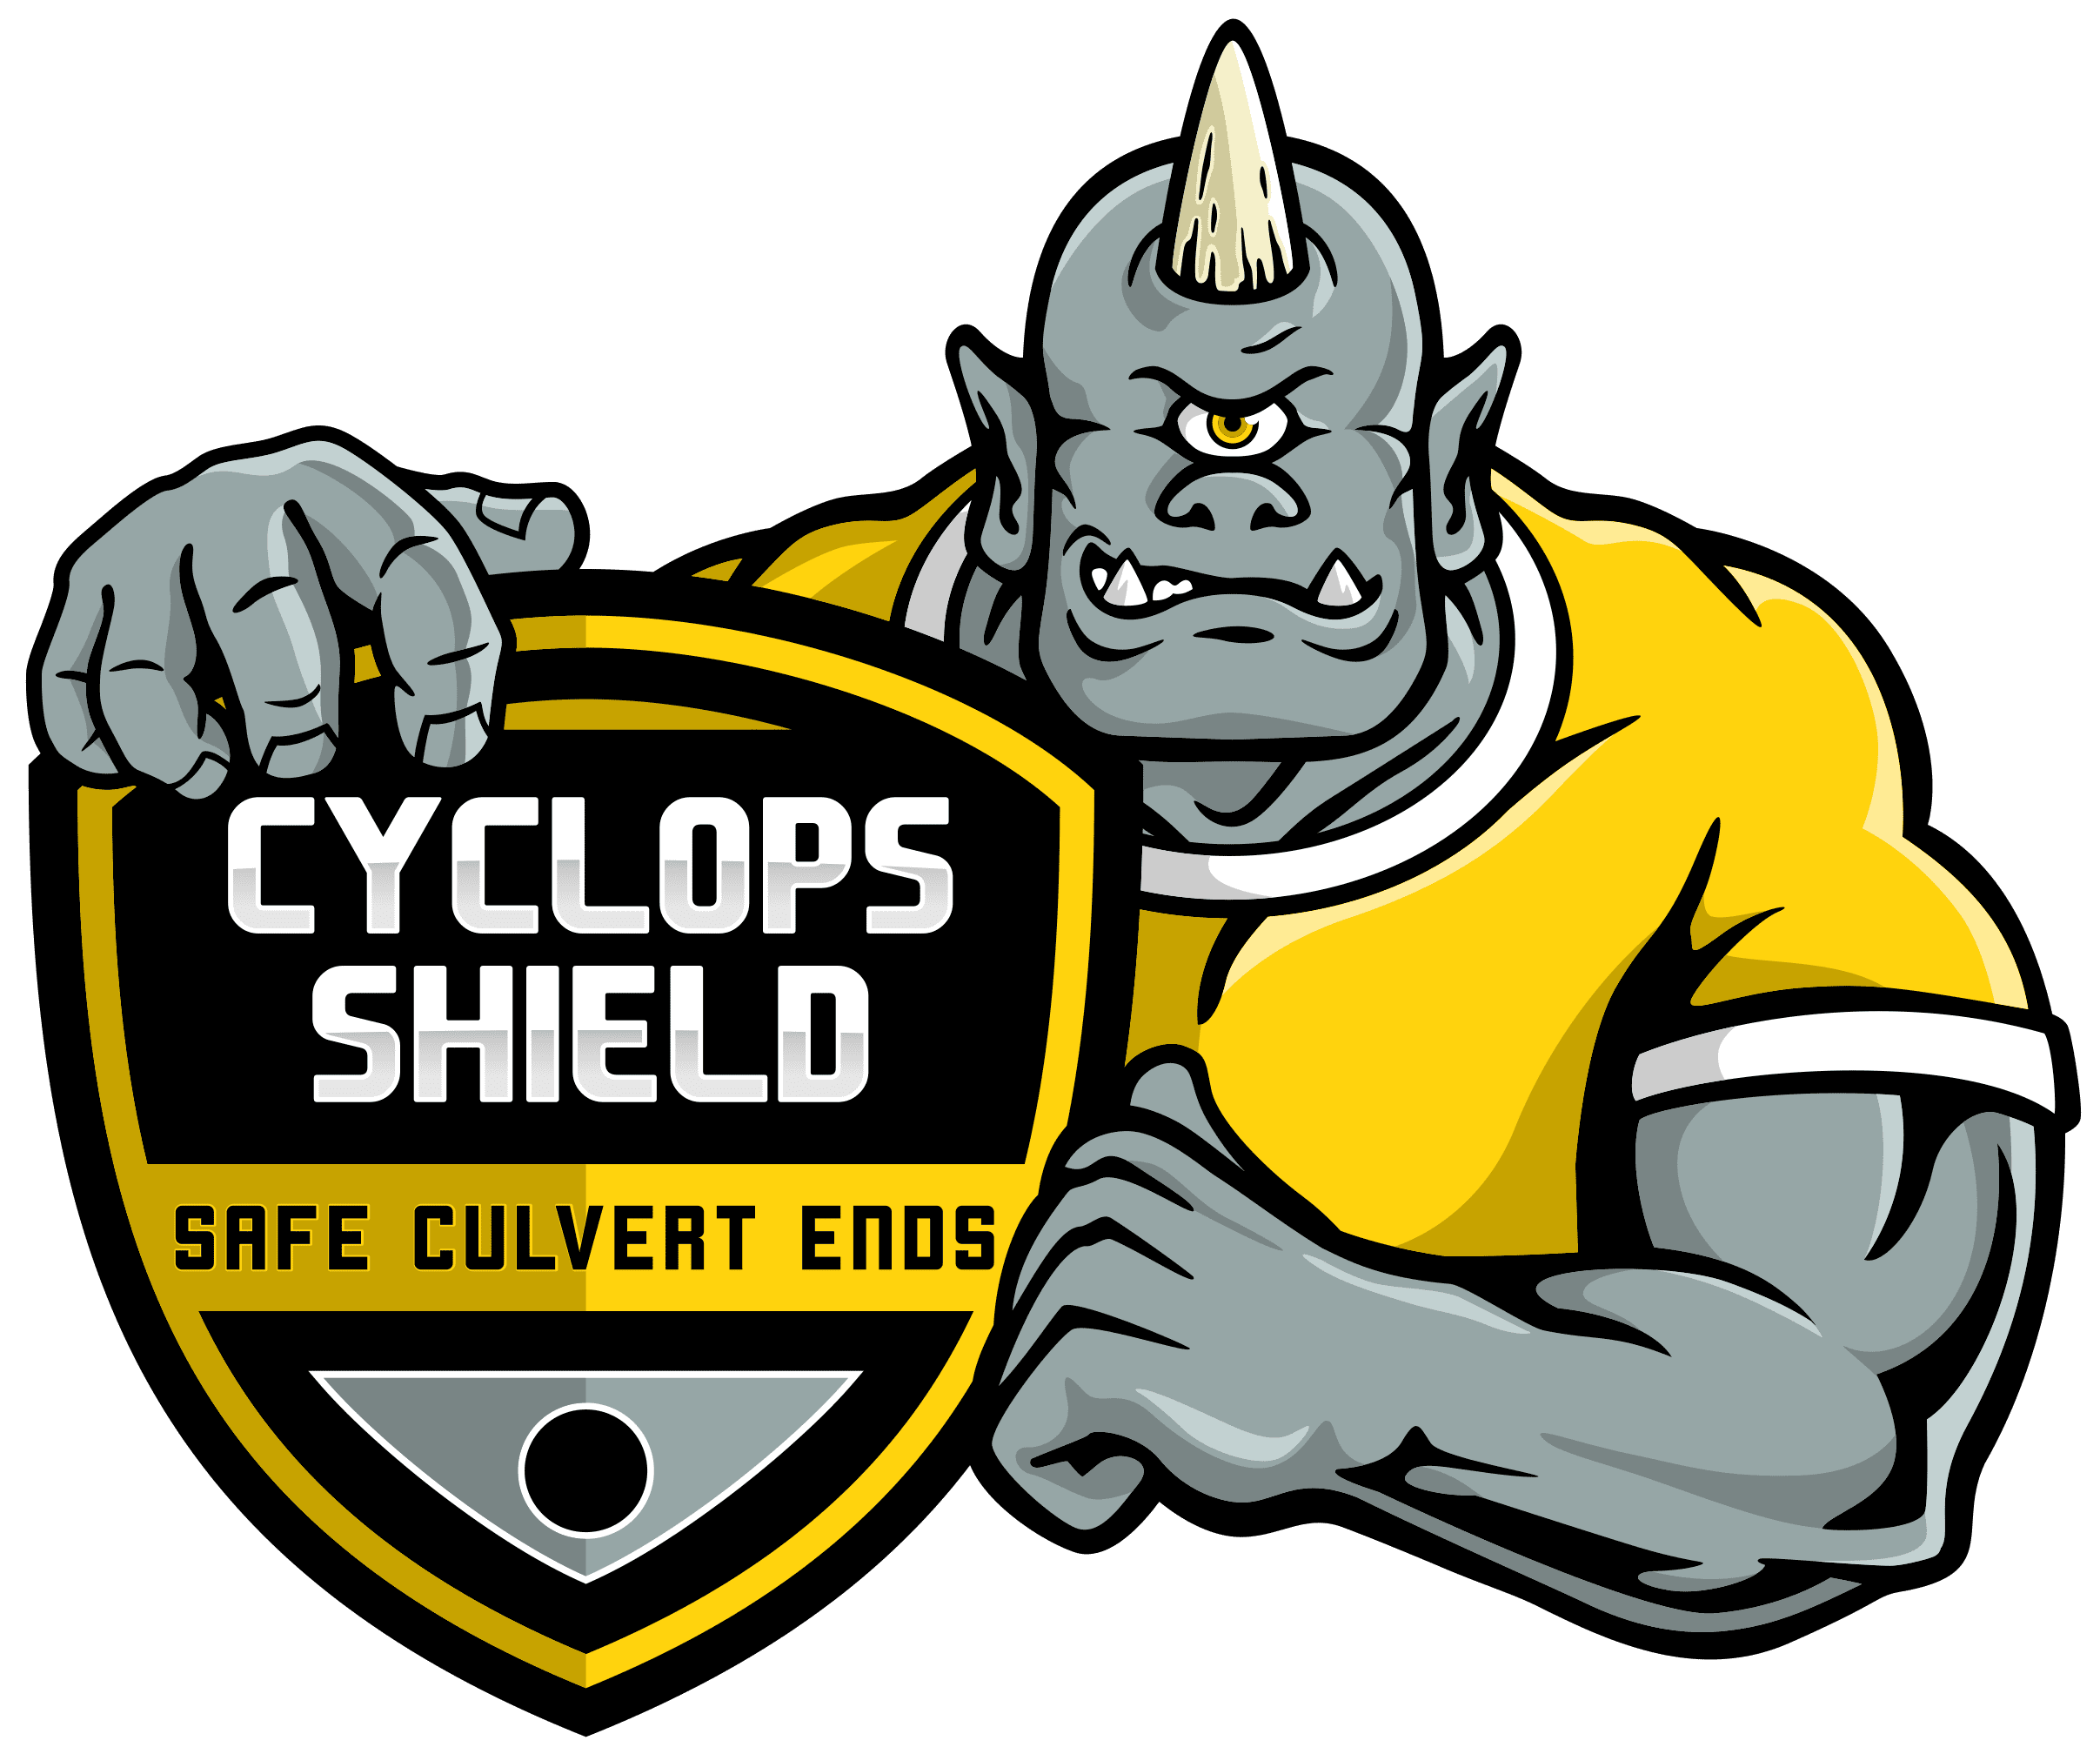 cyclops shield